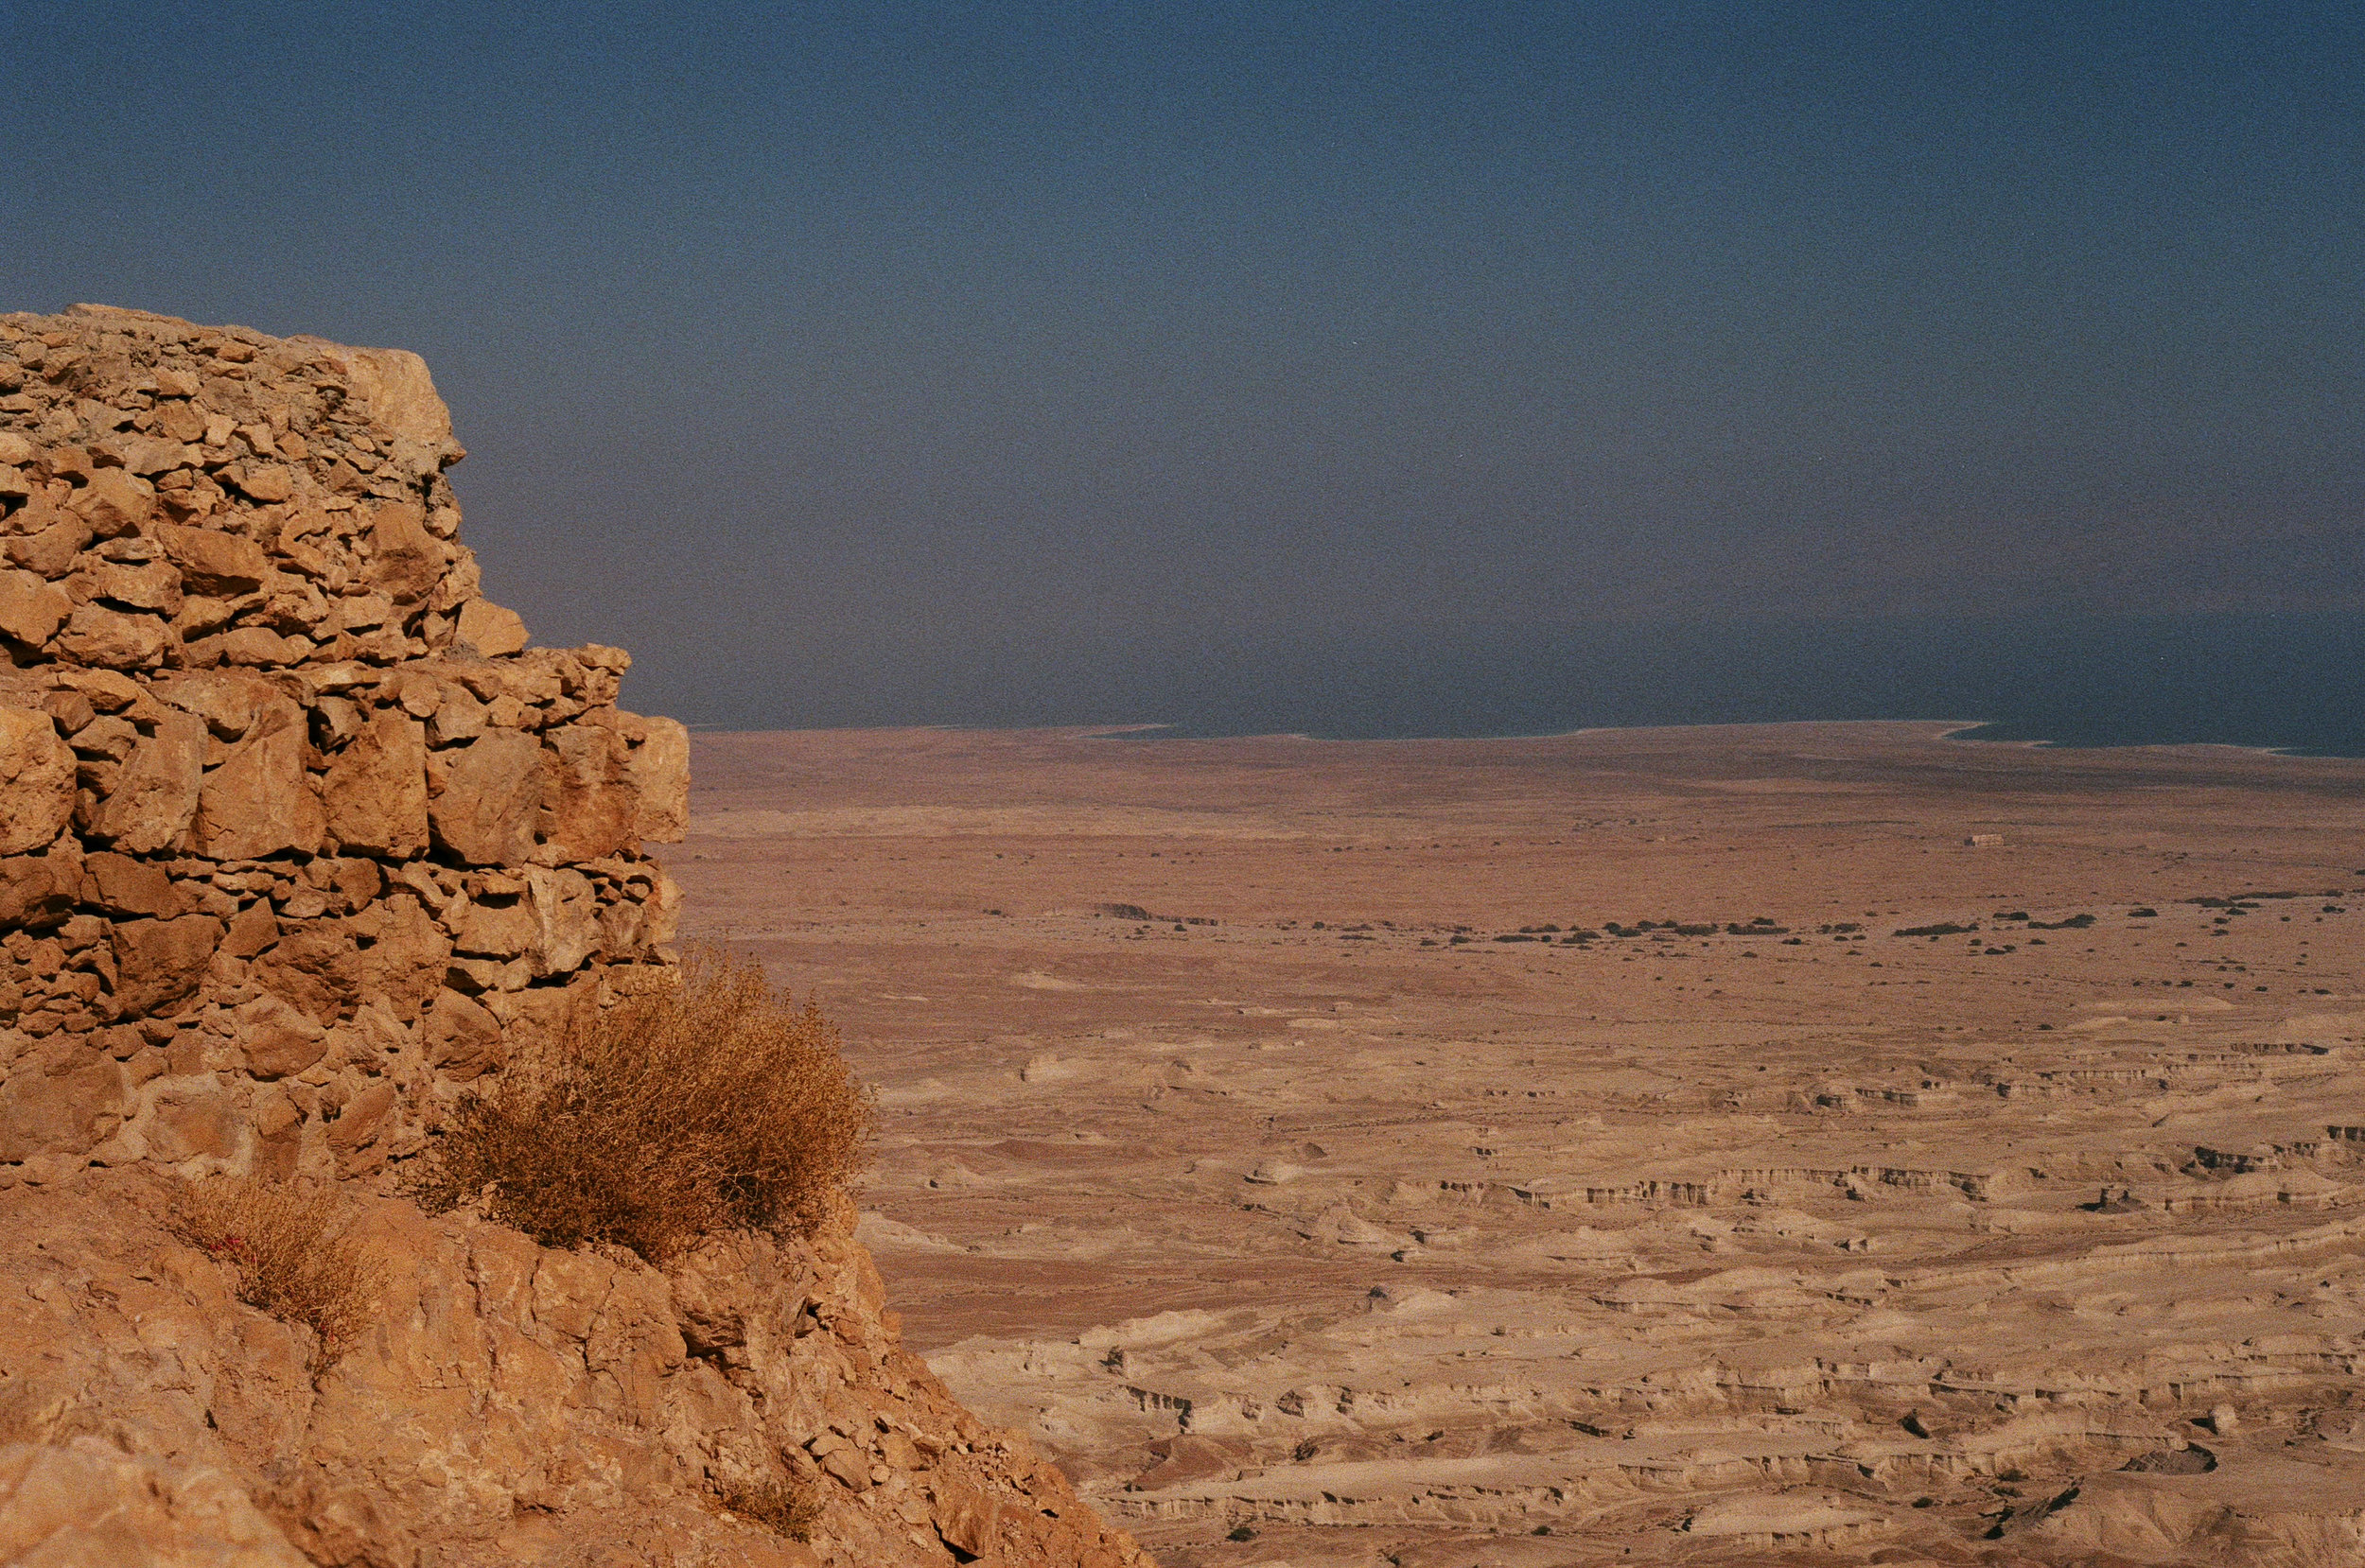 View of the dead sea from atop Masada.